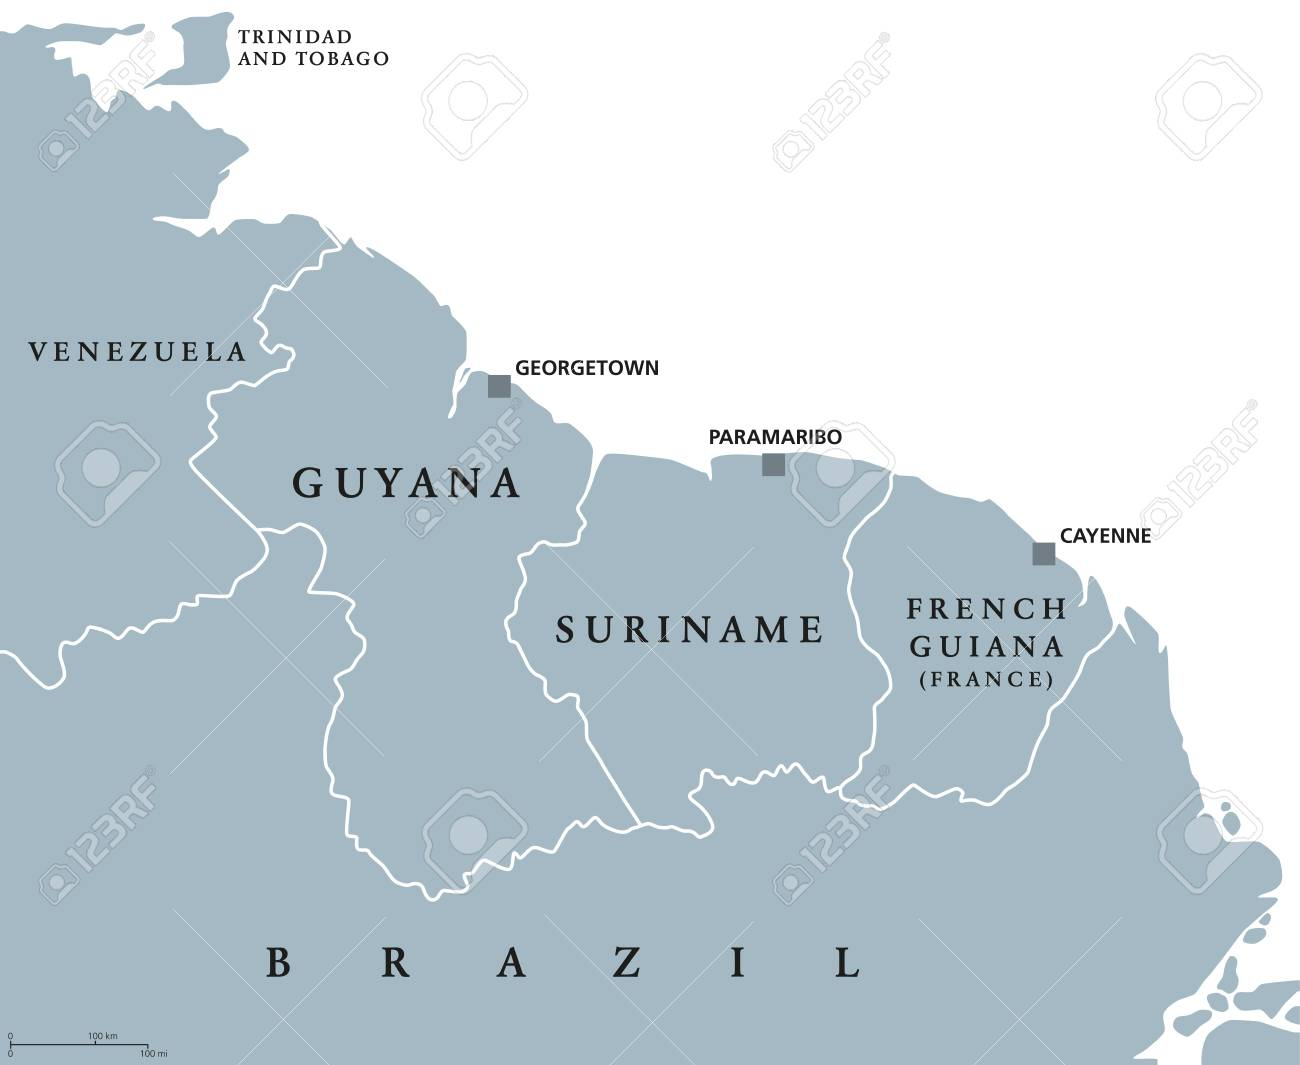 Guyana, Suriname and French Guiana political map with capitals.. on la paz map, bogota map, georgetown ohio map, falkland islands map, georgetown florida map, columbia north america map, georgetown caribbean map, georgetown ontario map, georgetown dc, galapagos islands map, brasilia map, georgetown guyana map, latin america map, cayenne map, georgetown tx school zone map, camp humphreys south korea map, georgetown jamaica map, lake titicaca map, montevideo map, georgetown alaska map,